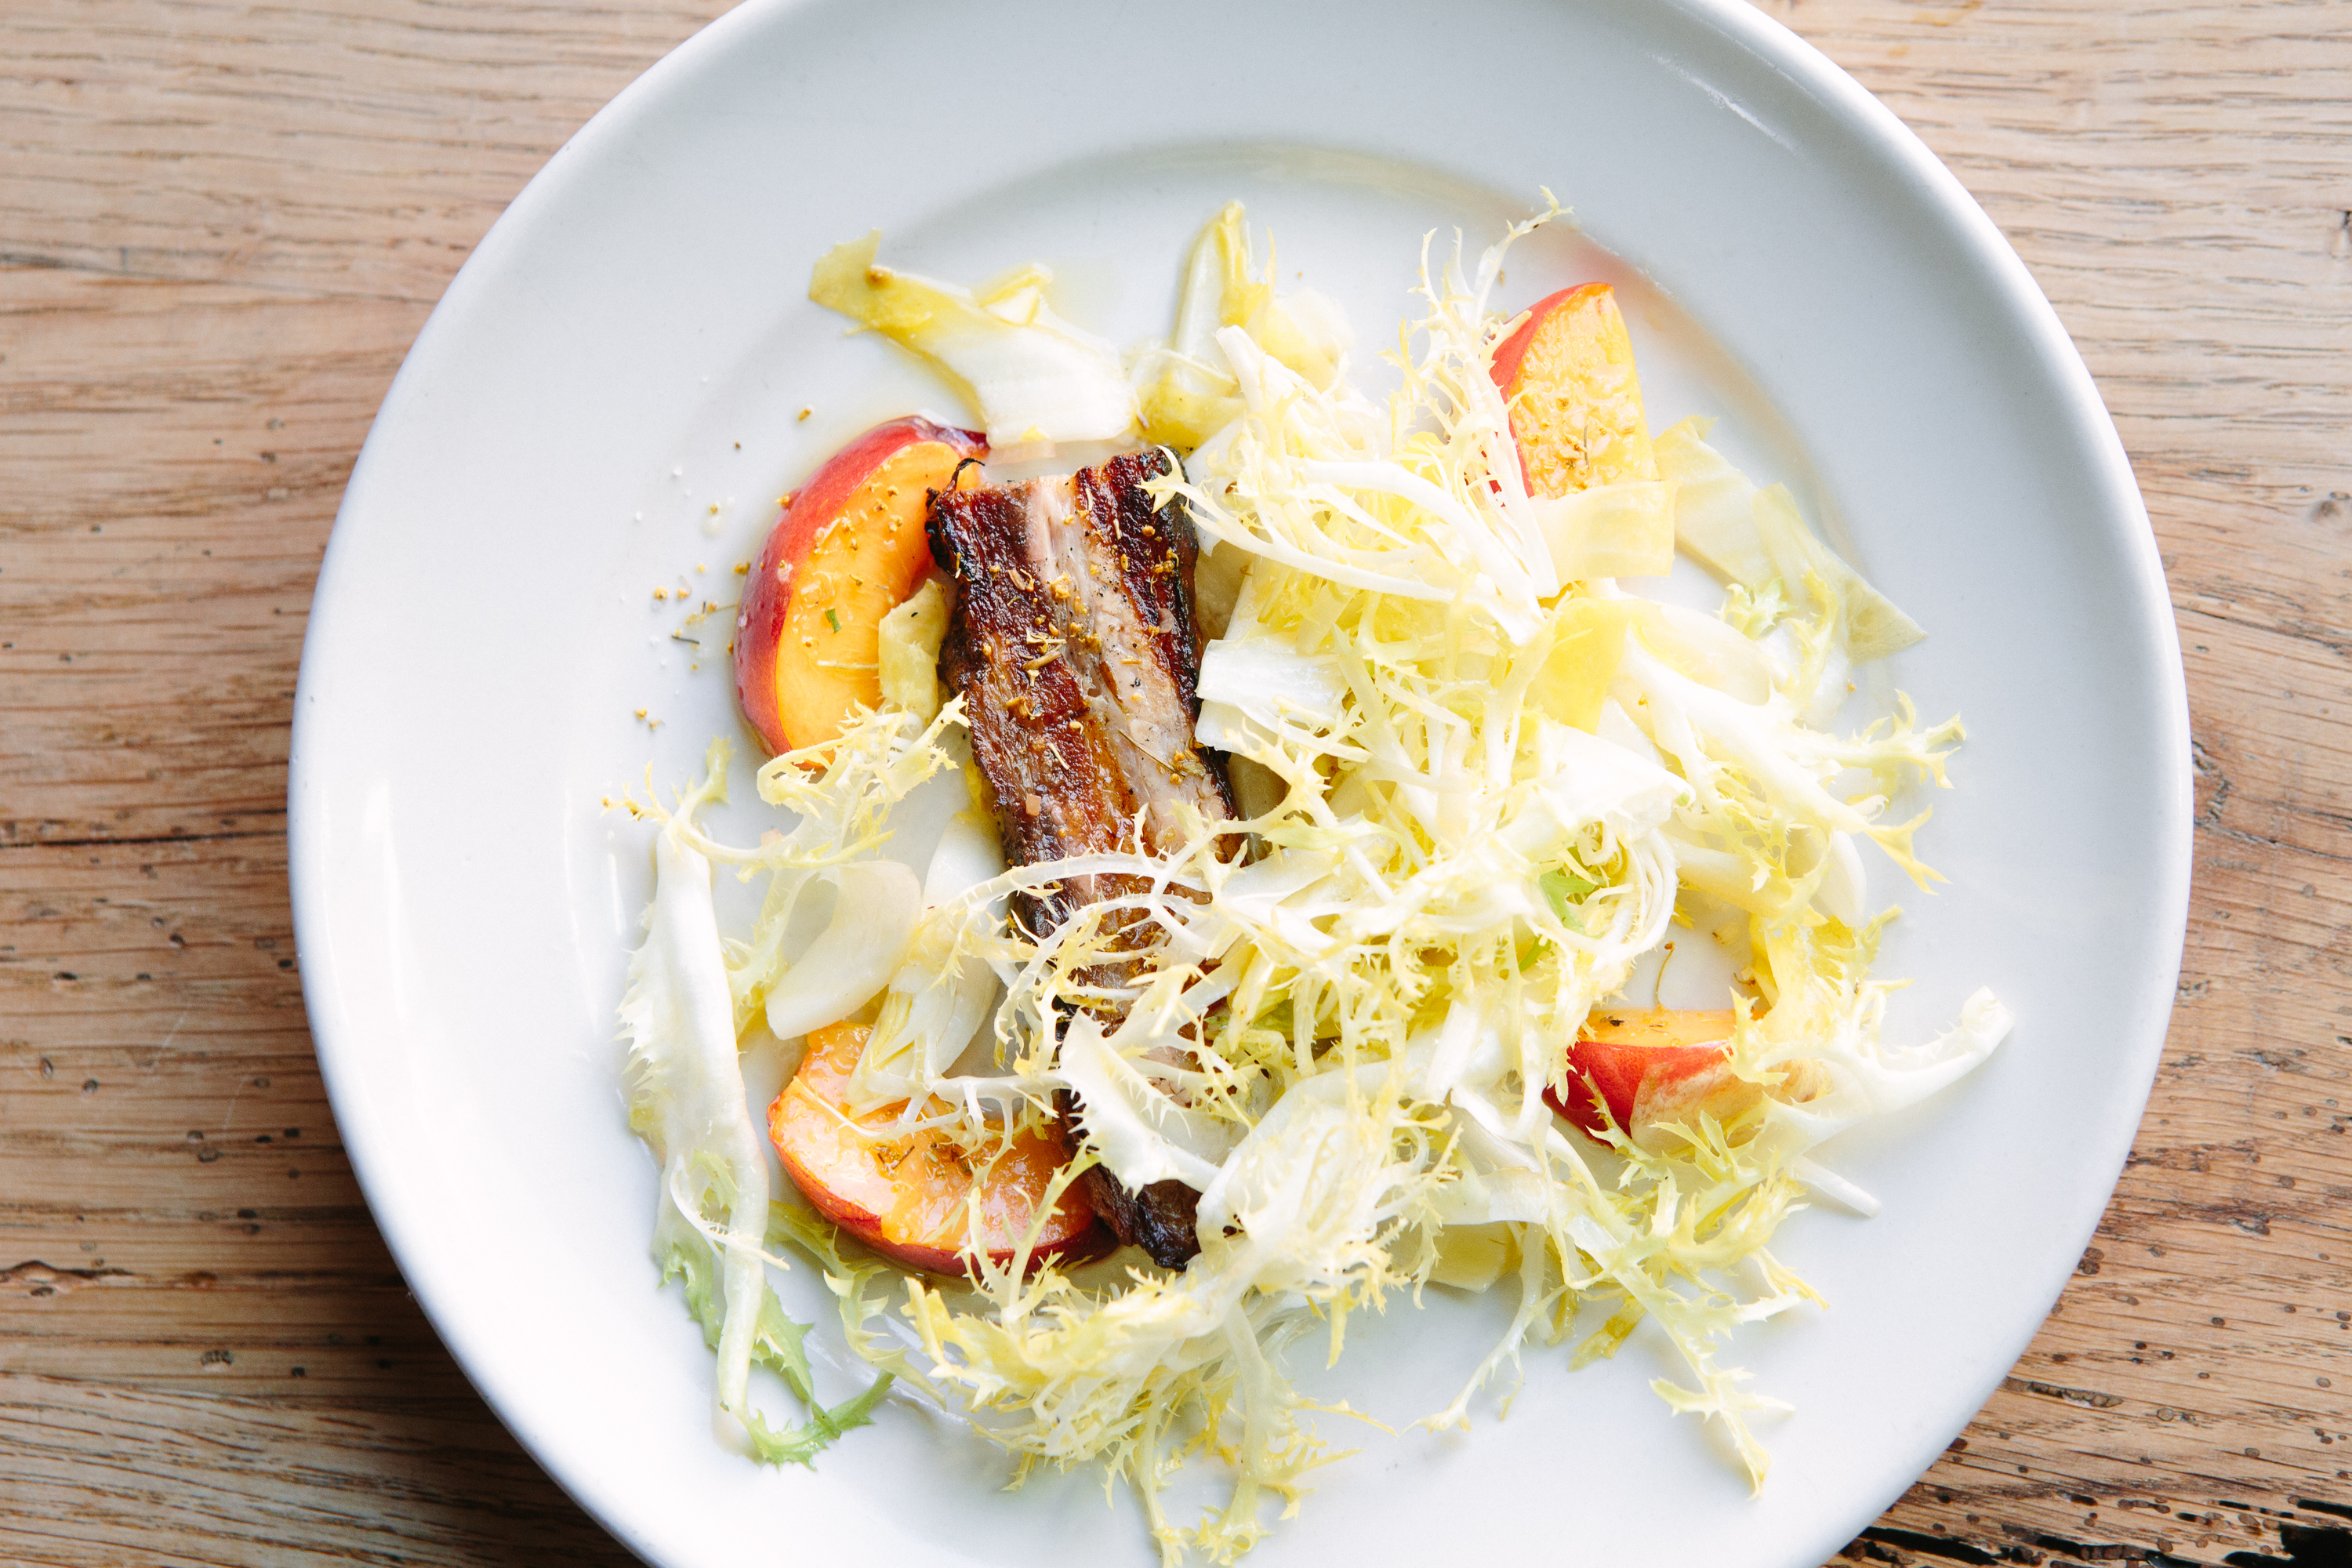 Roast Pork Belly with Nectarines, Frisée and Endive at Bar Agricole